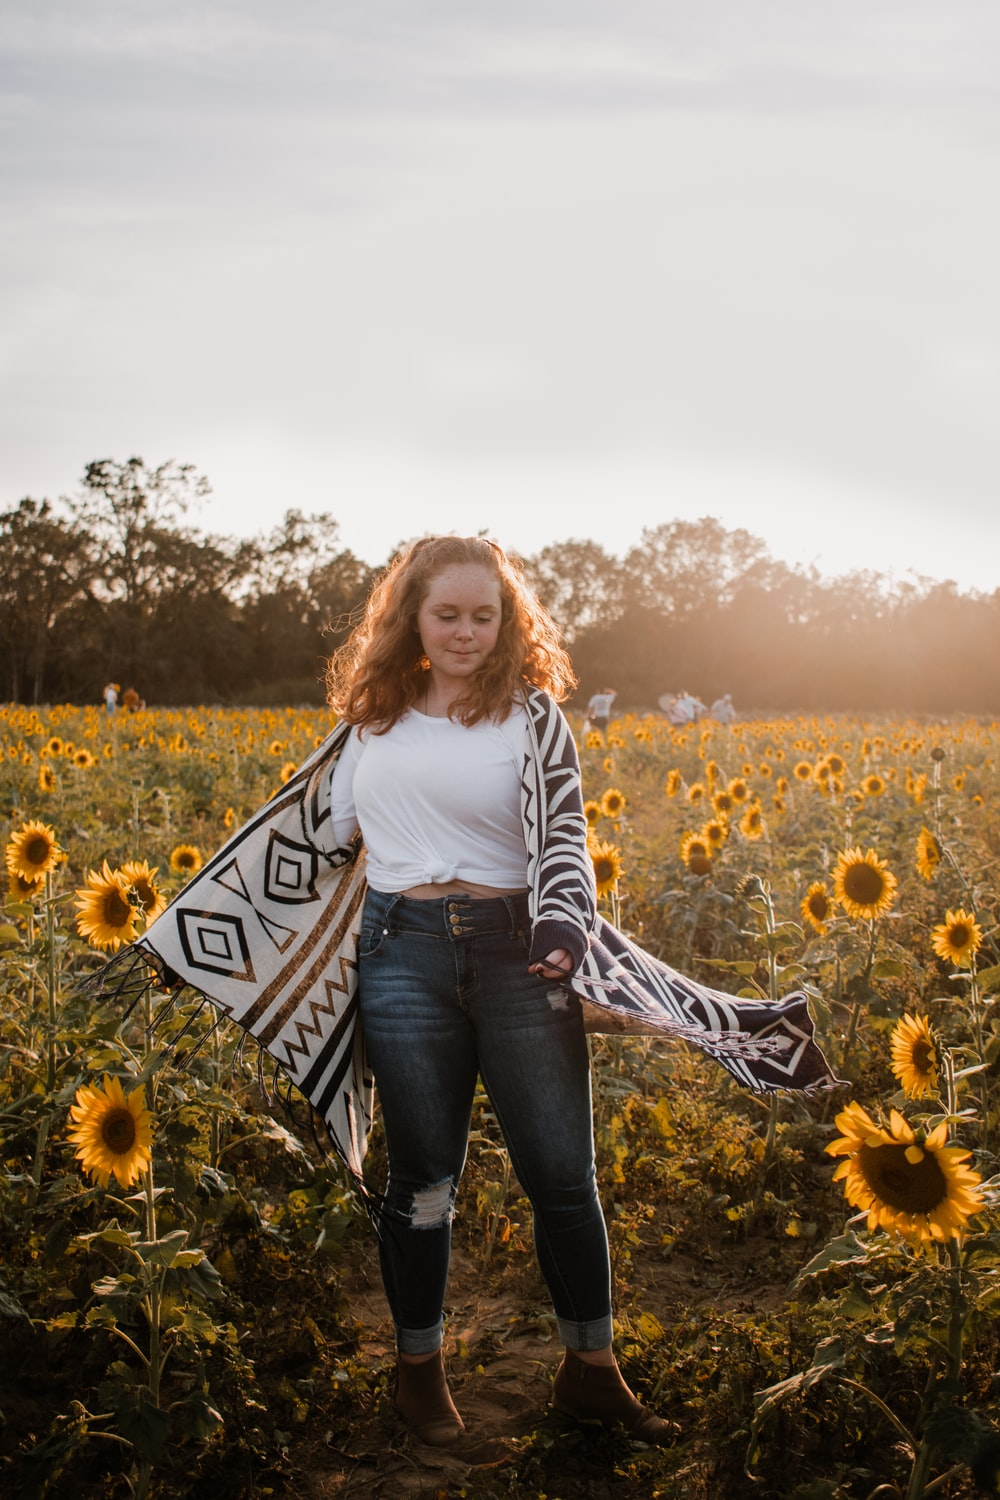 woman in white long sleeve shirt standing on yellow flower field during daytime